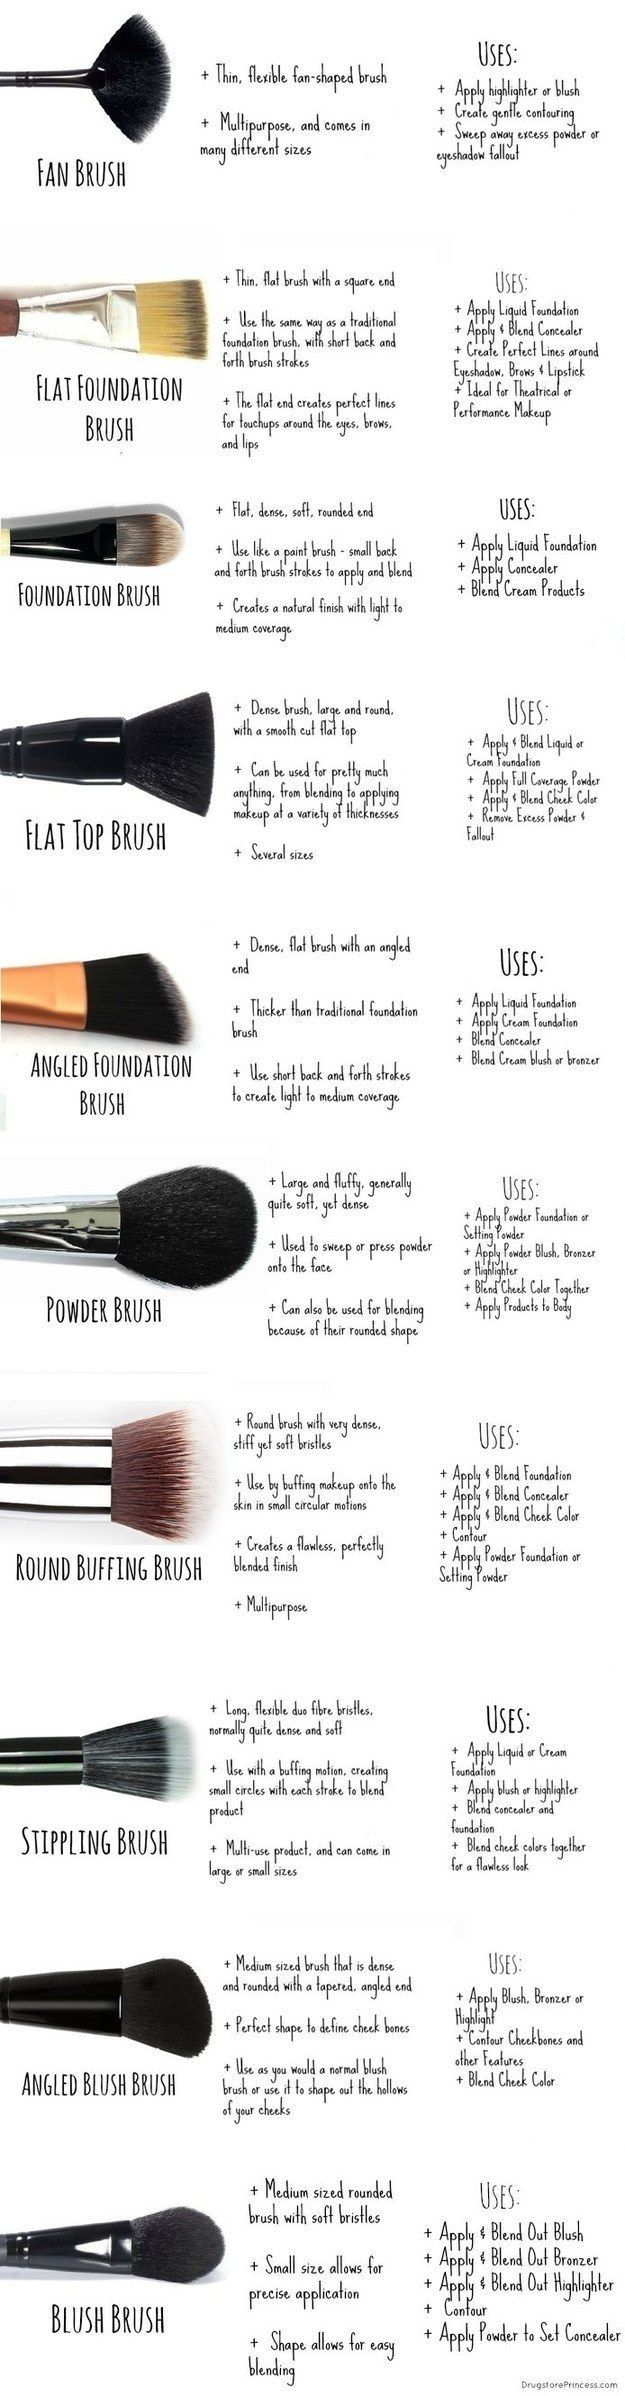 Here can you see what the brushes can be used to. I think that you should do makeup the way you like it, and i don't say that using a browbrush like a eyeliner pencil is wrong. But if you're interested in seeing what they really are suposed to be used to